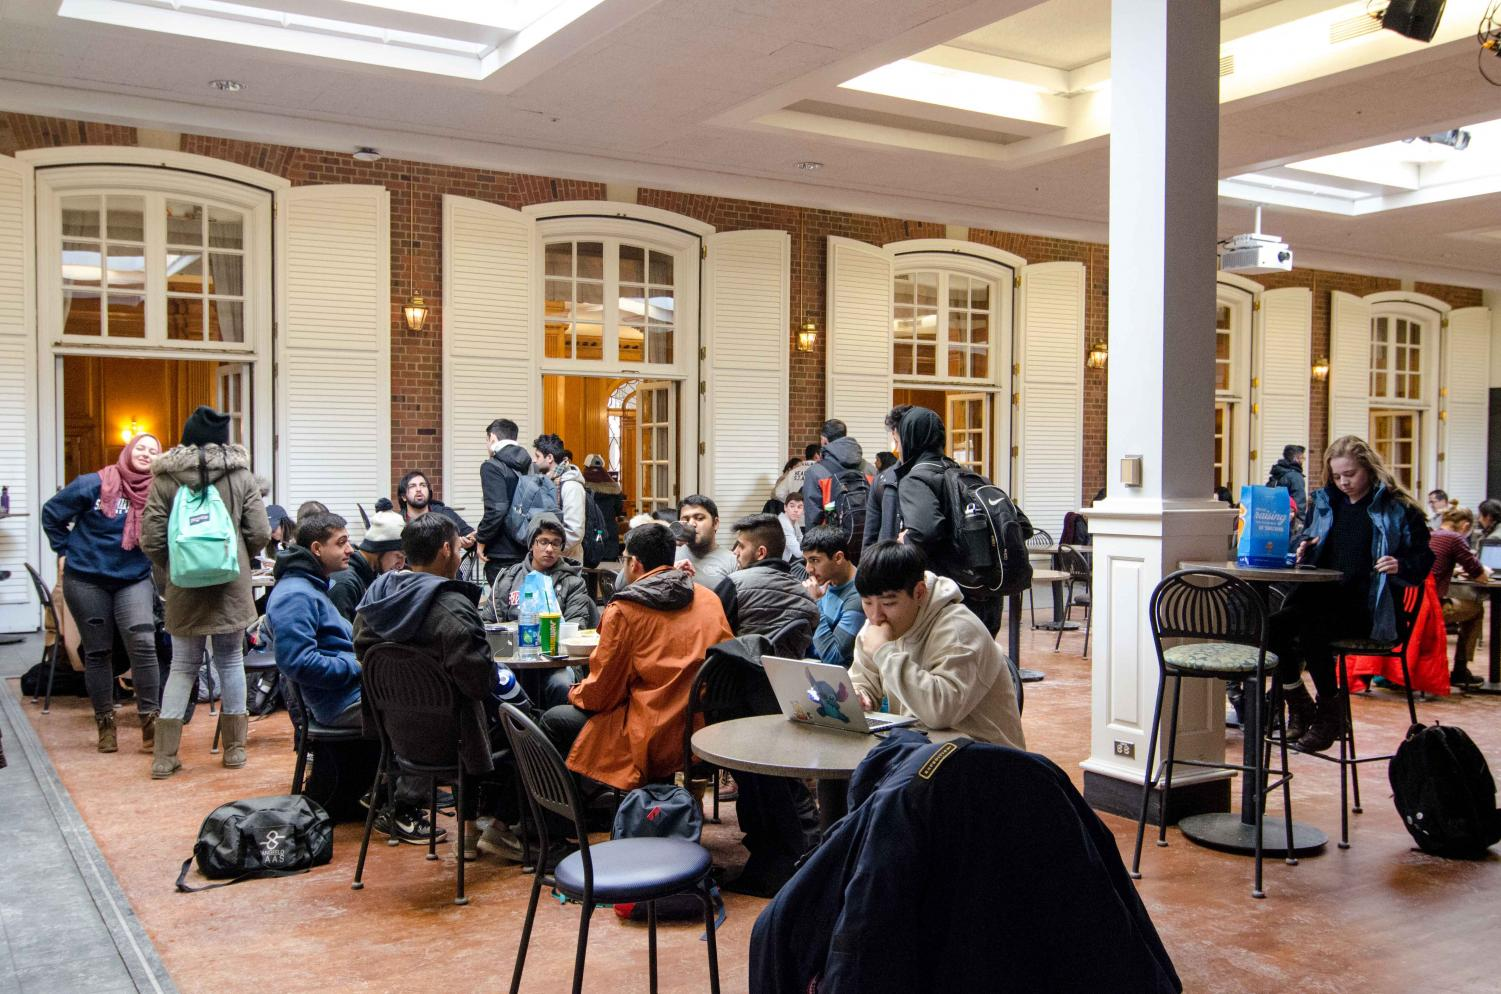 Students mingle on the first day of the Spring semester at the Illini Union Courtyard on Tuesday.